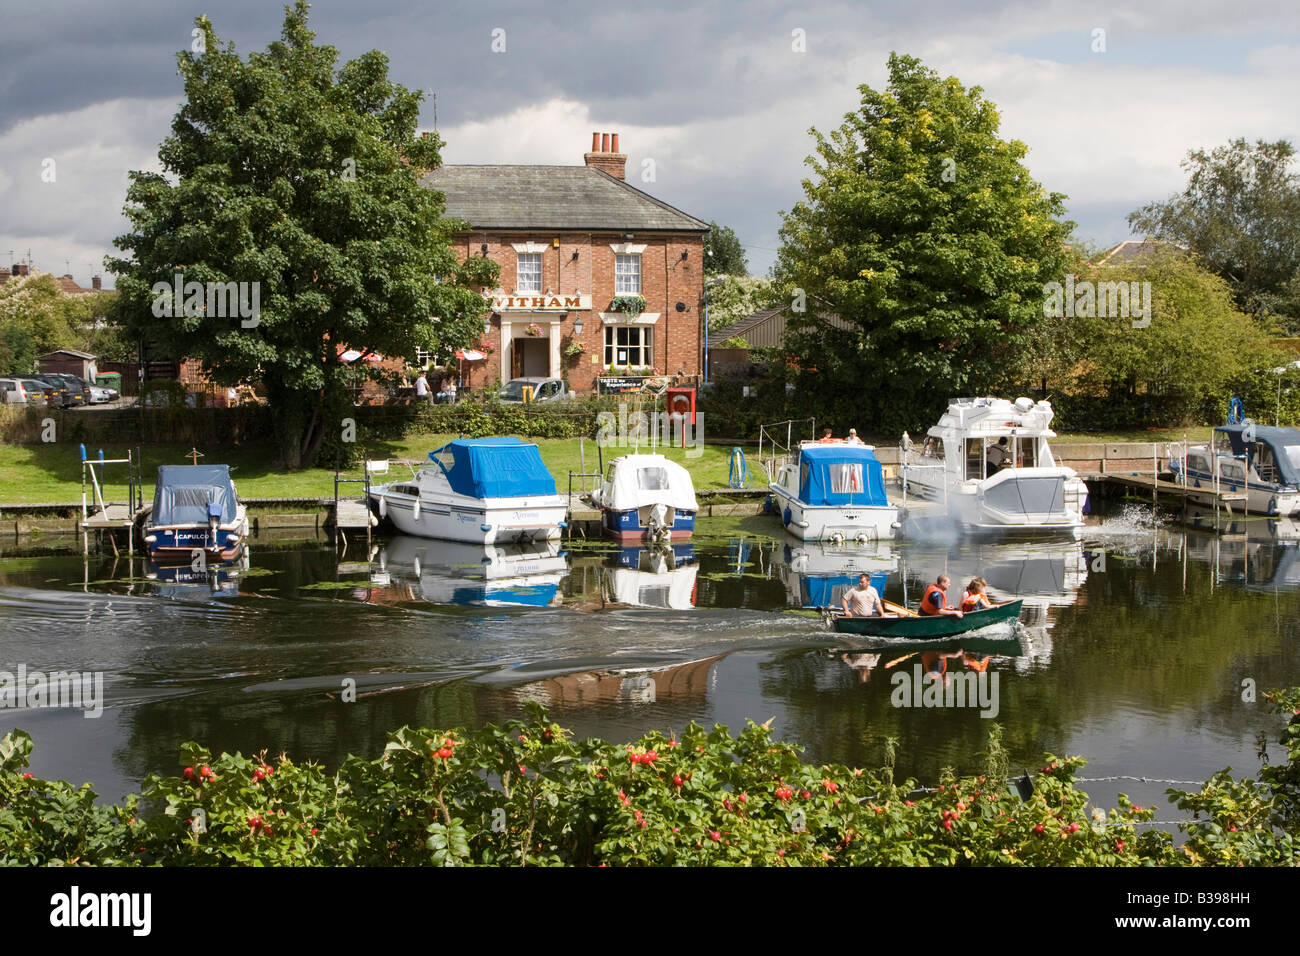 Río Witham boston lincolnshire inglaterra gb Imagen De Stock